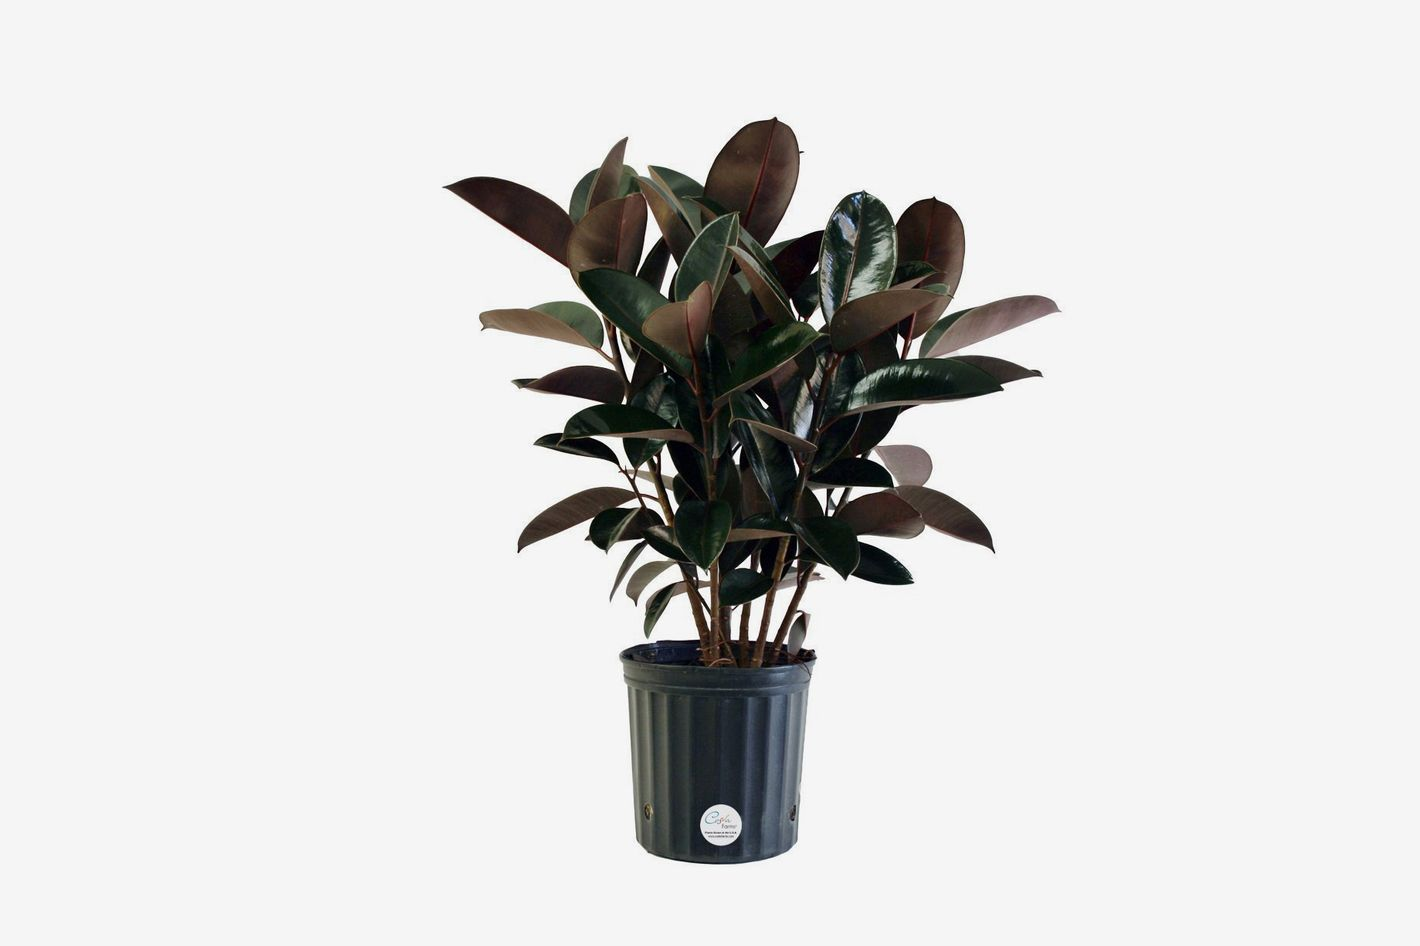 Costa Farms Premium Live Indoor Burgundy Rubber Plant